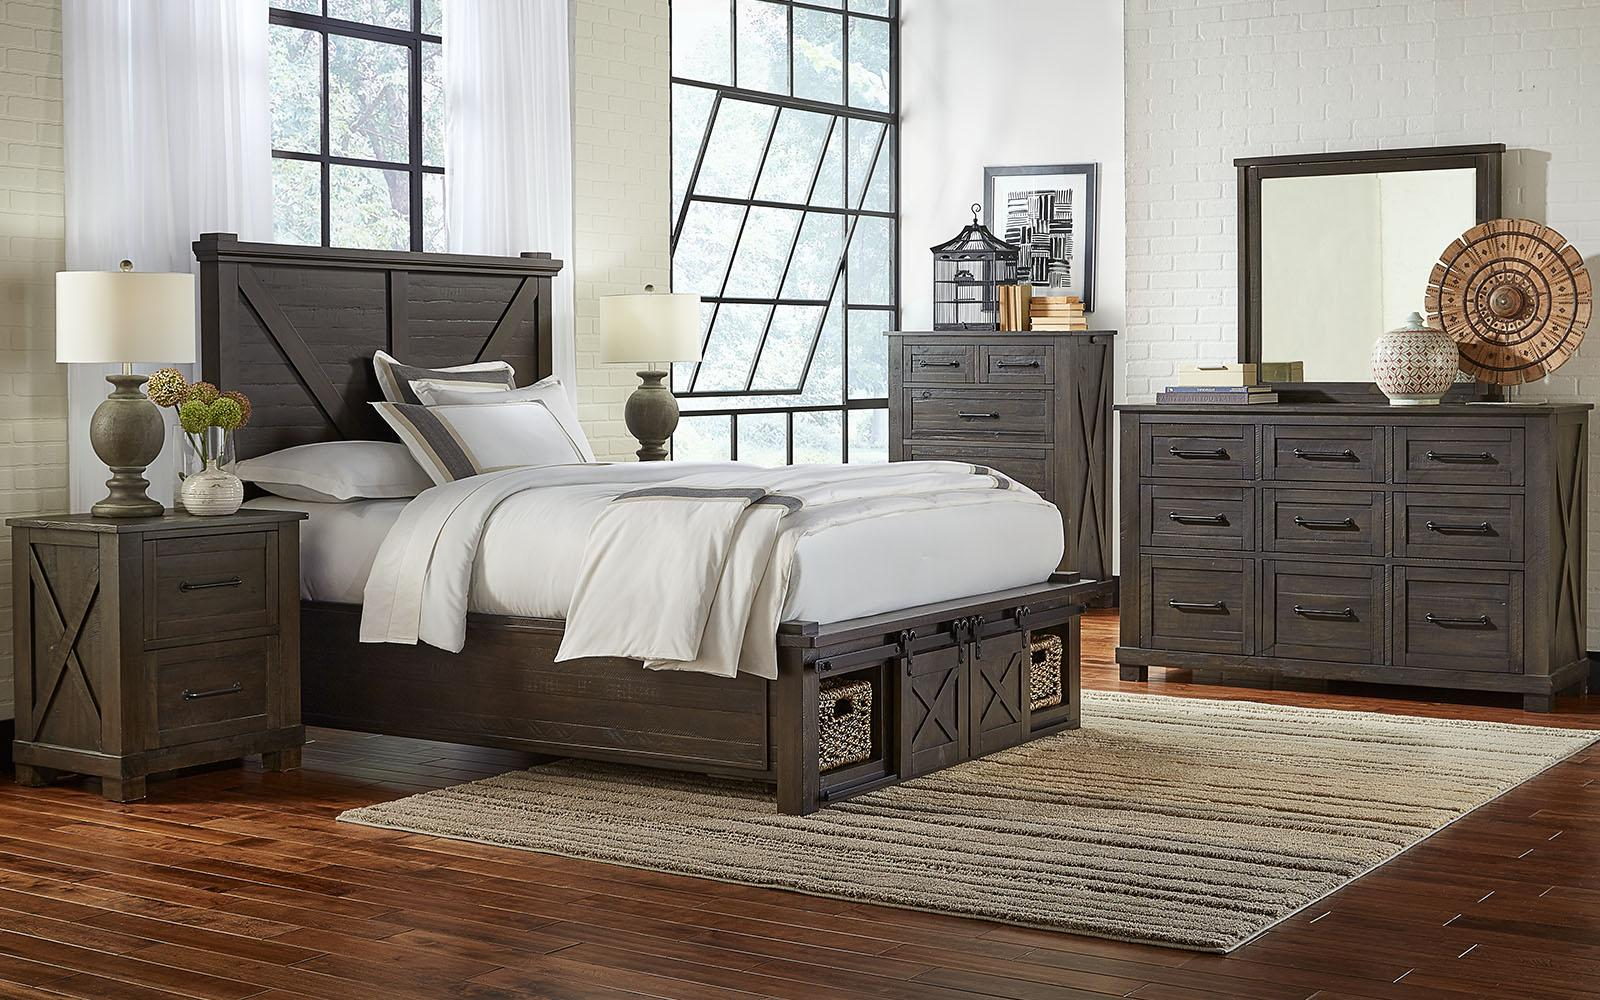 Rustic Queen Rotating Storage Bedroom Set 3Pcs SUVCL5092 A-America Sun  Valley